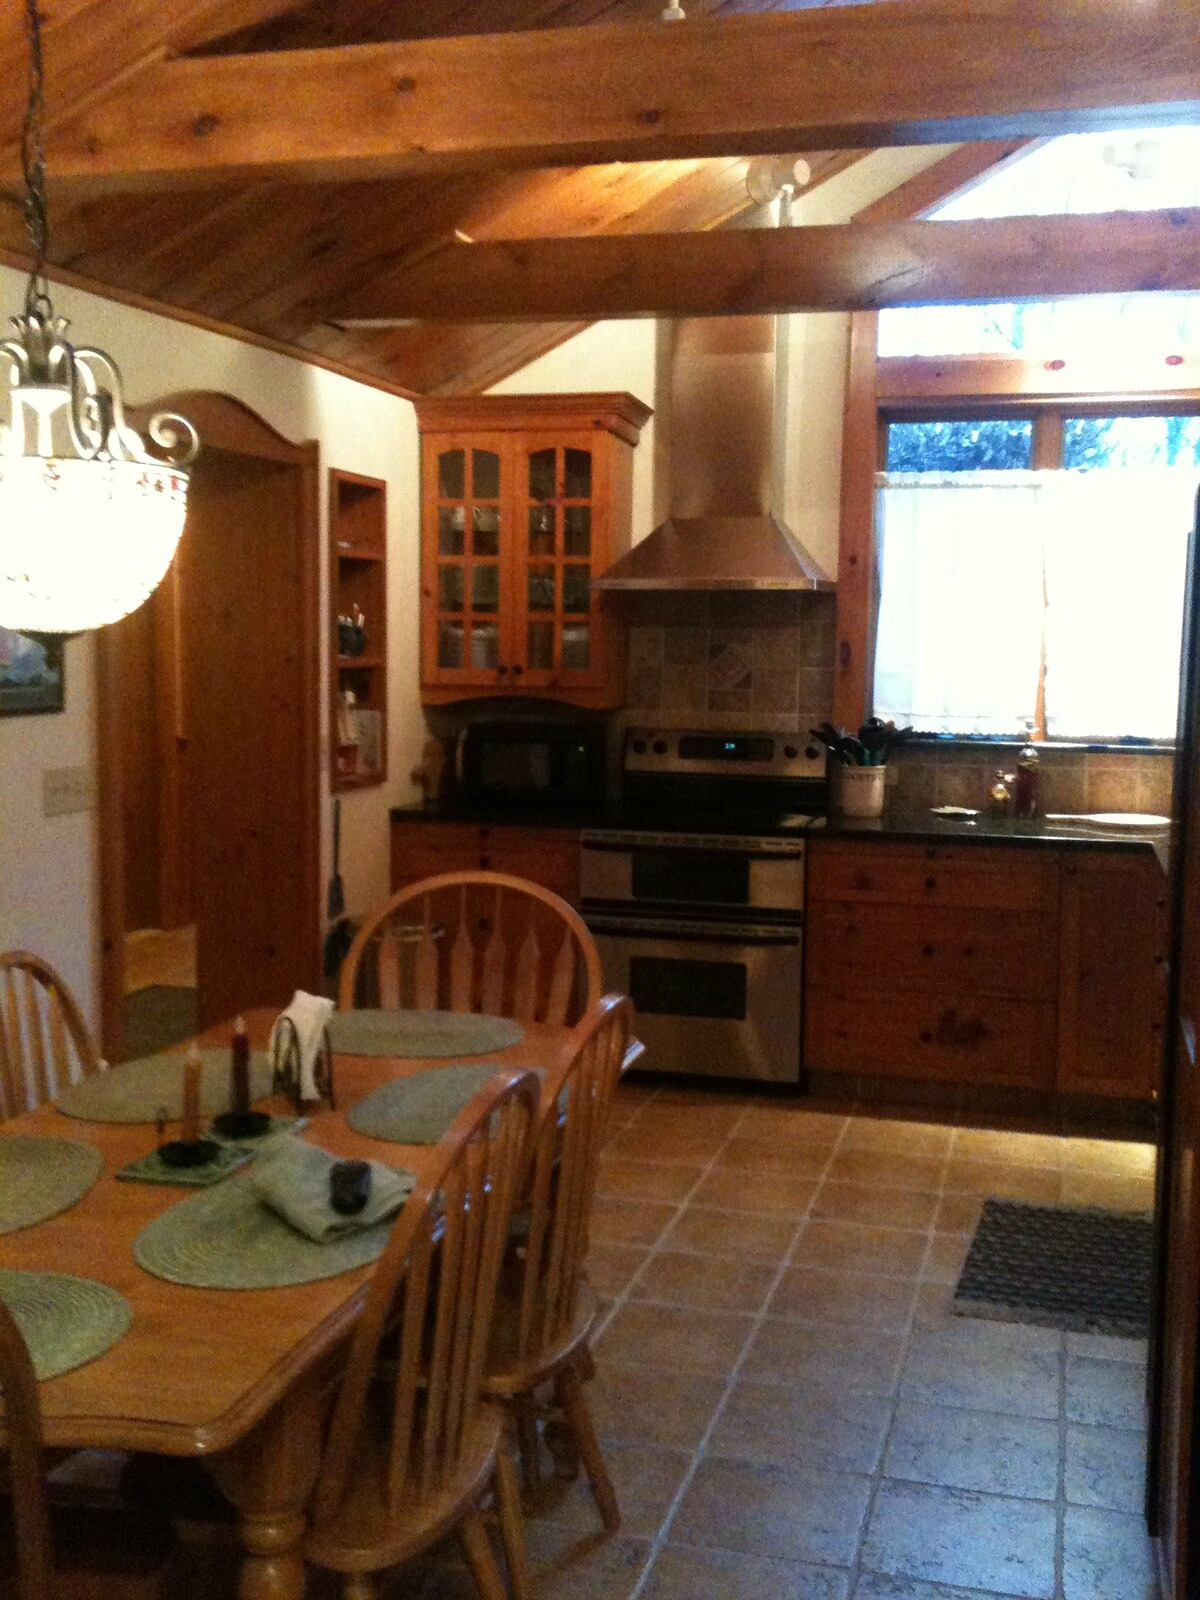 The kitchen opens into the dining room.